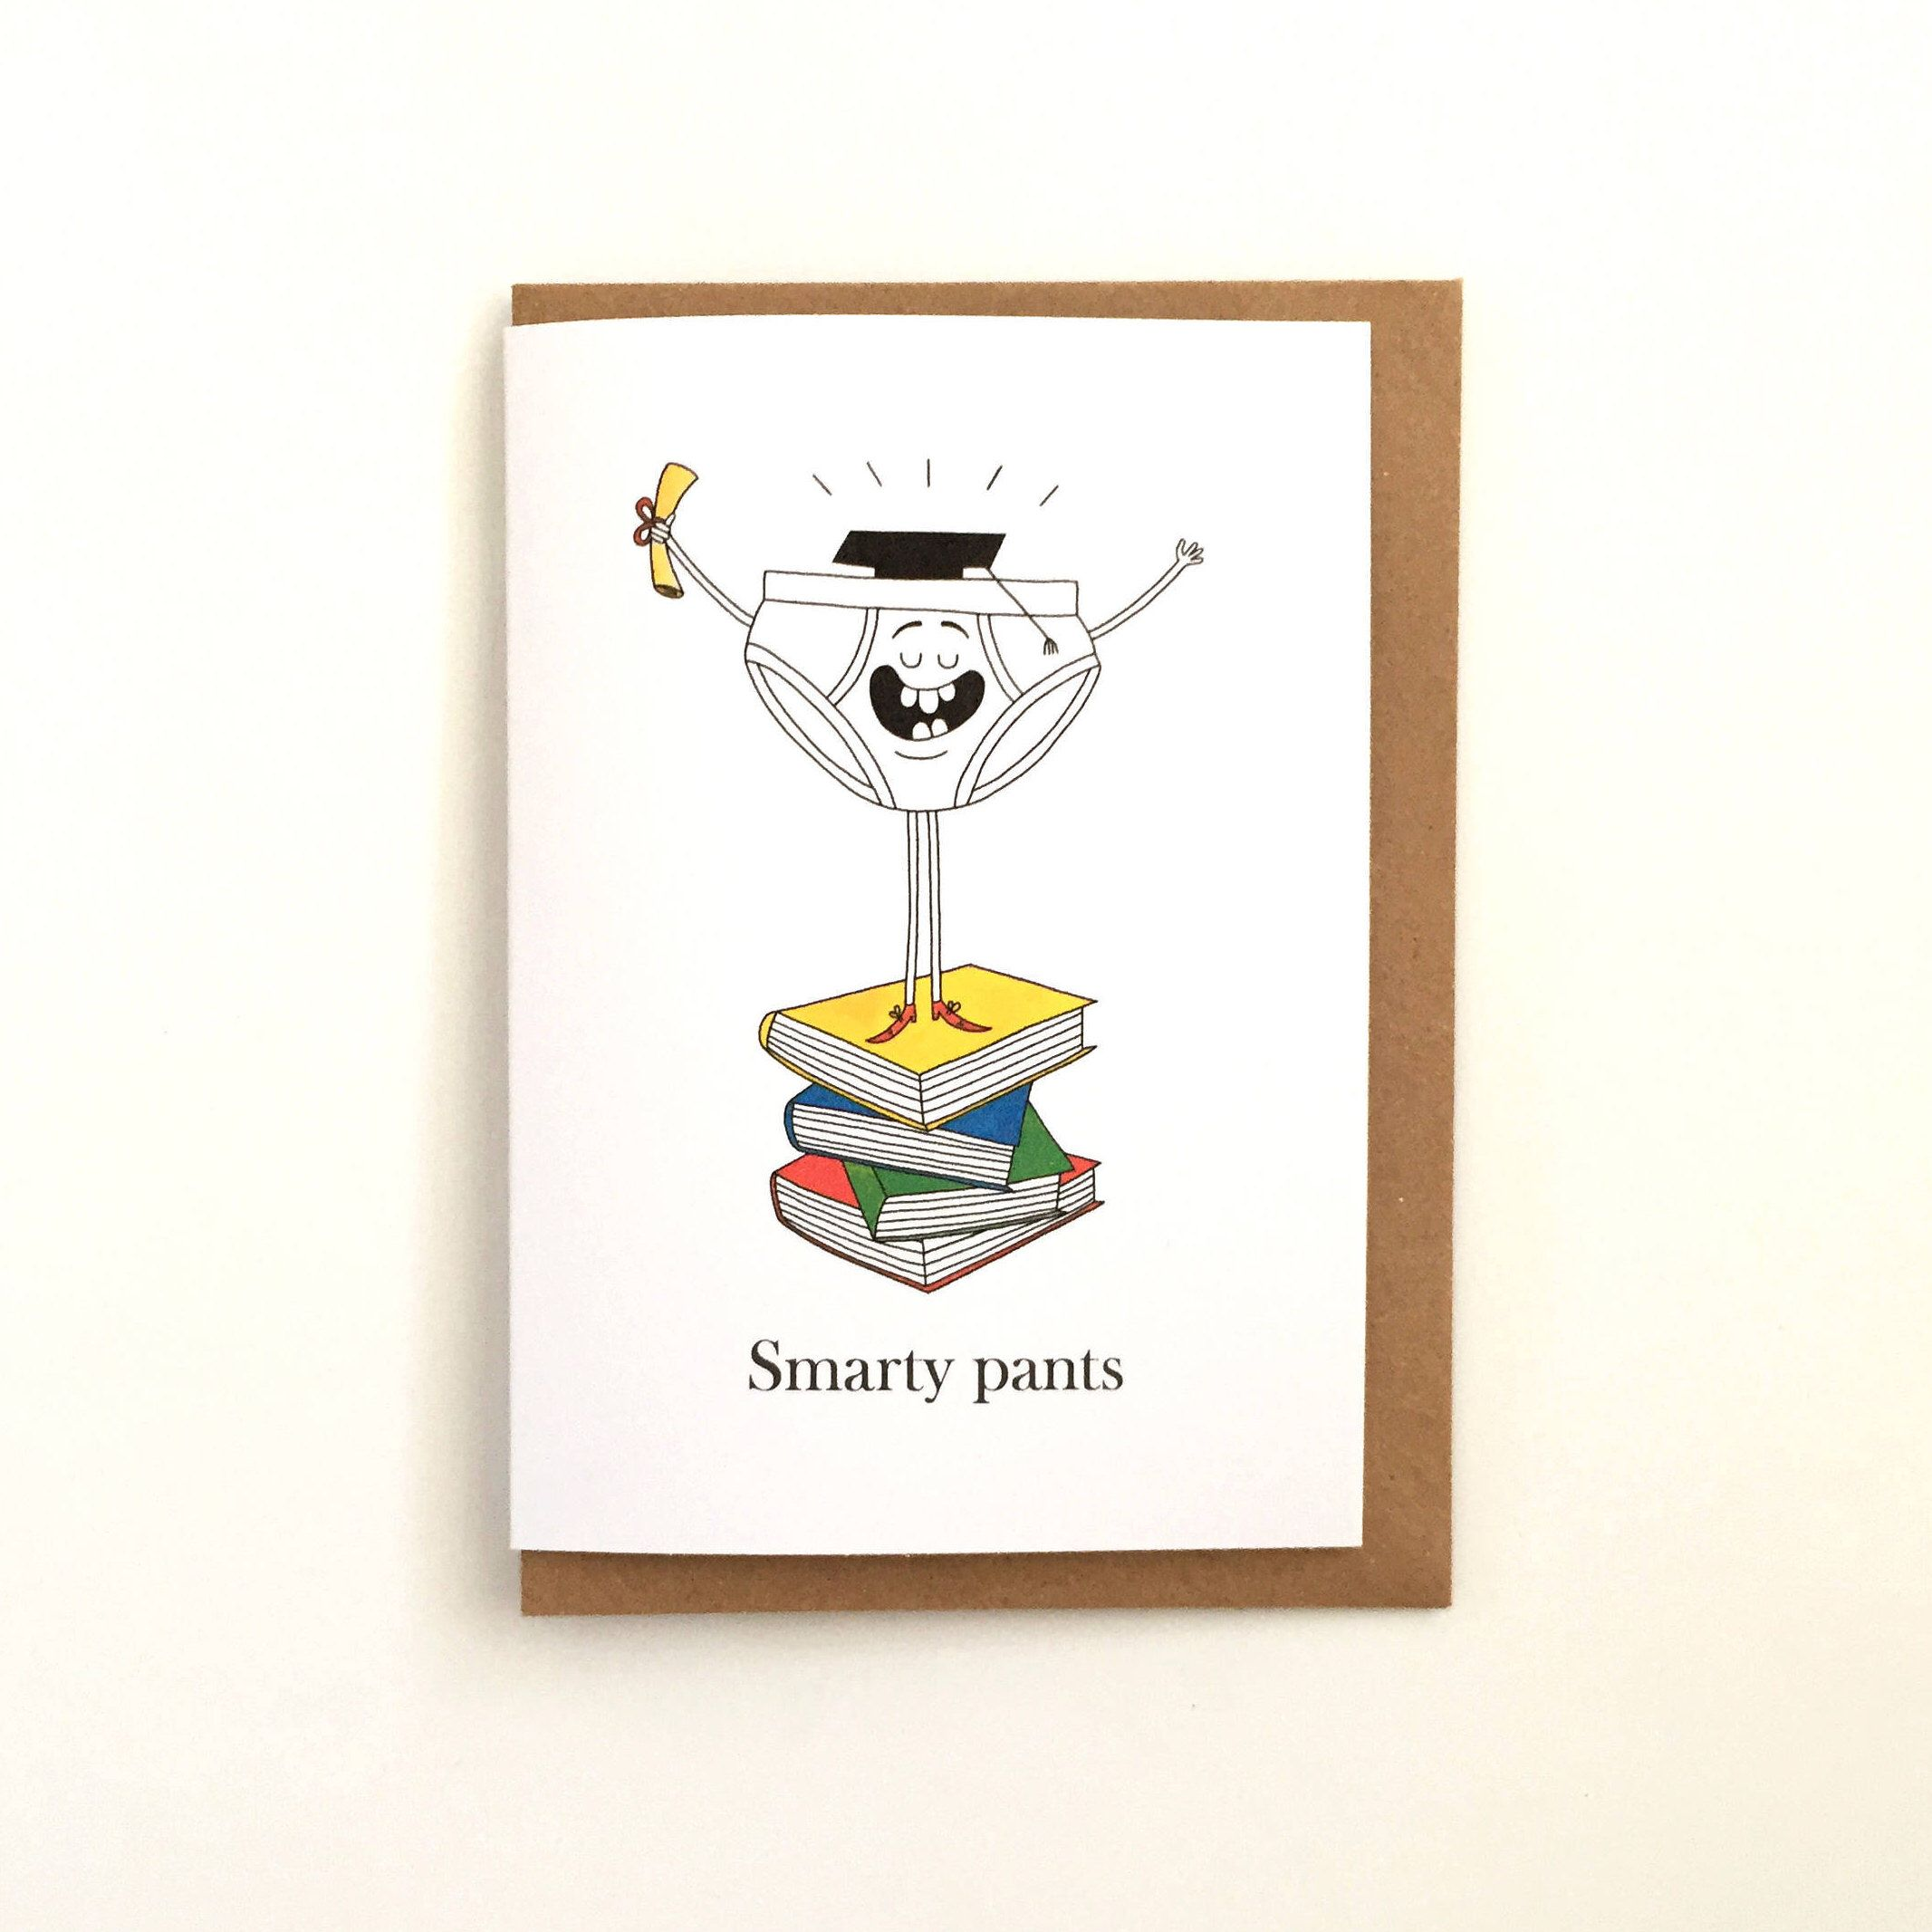 Smarty Pants Exam Results Graduation Greetings Card Well Done